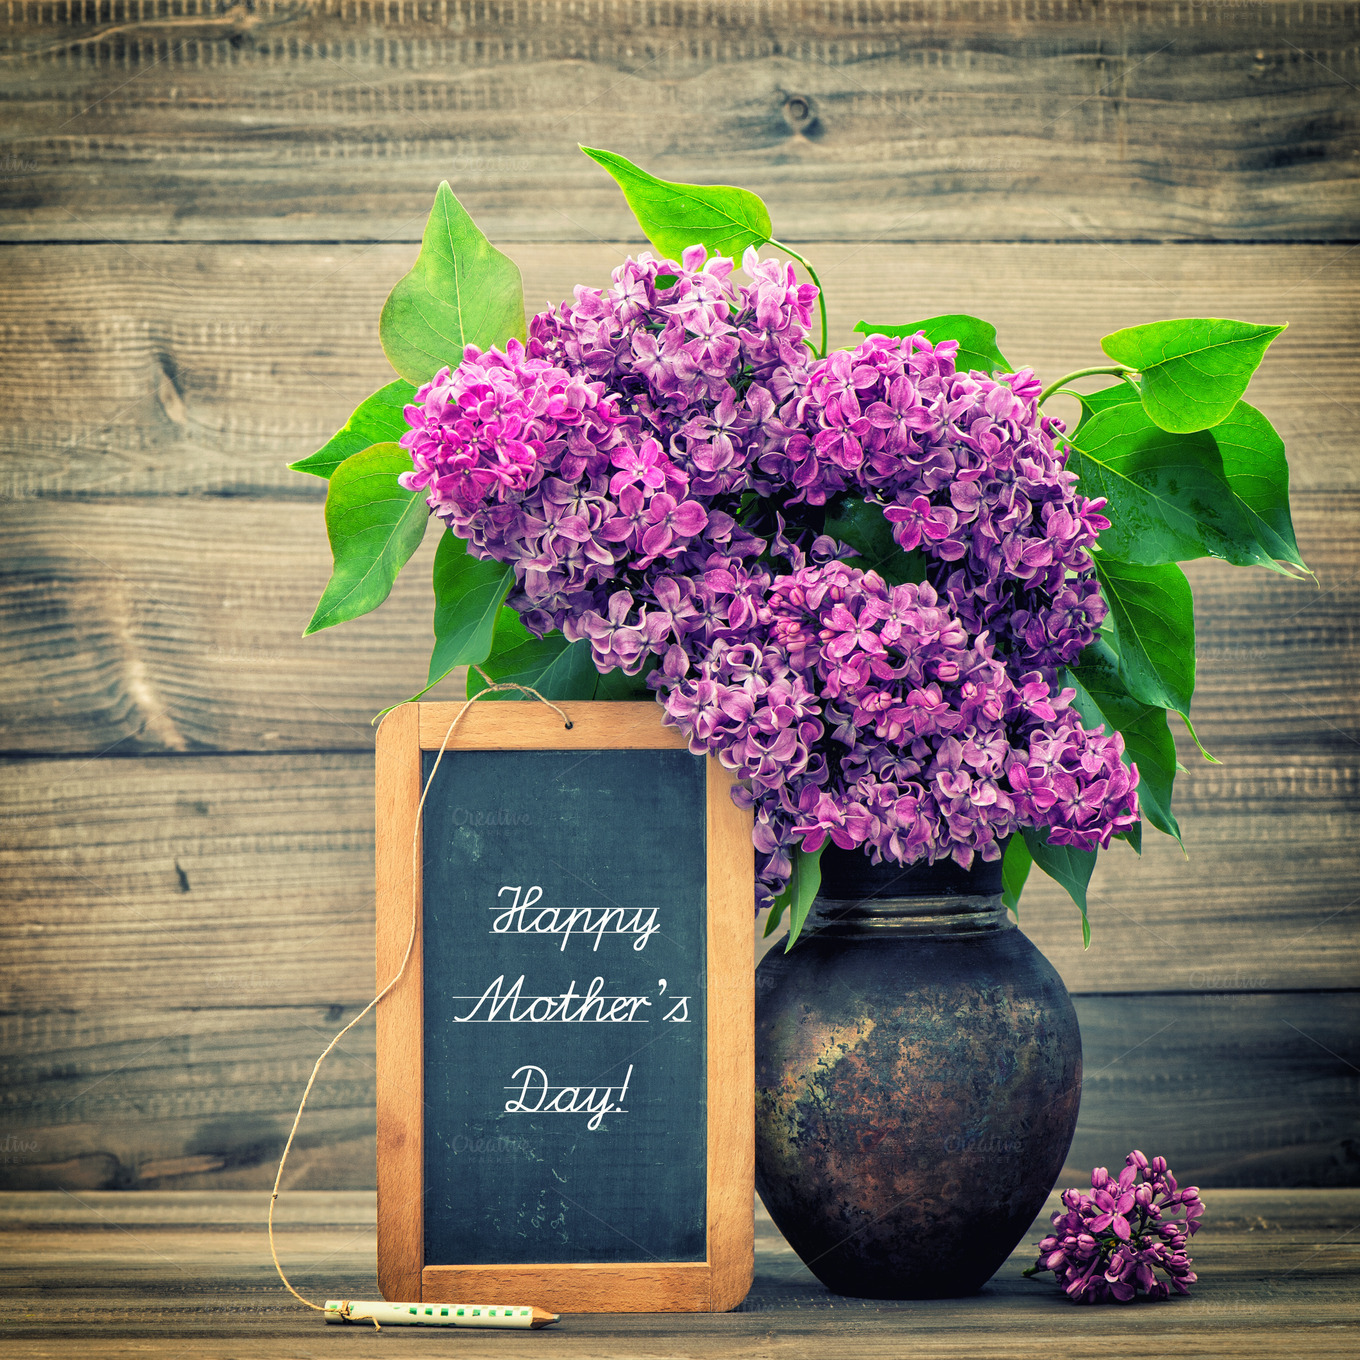 Creative Floral Flyer Of Happy Mothers Day Template For: Lilac Flowers. Happy Mother's Day!